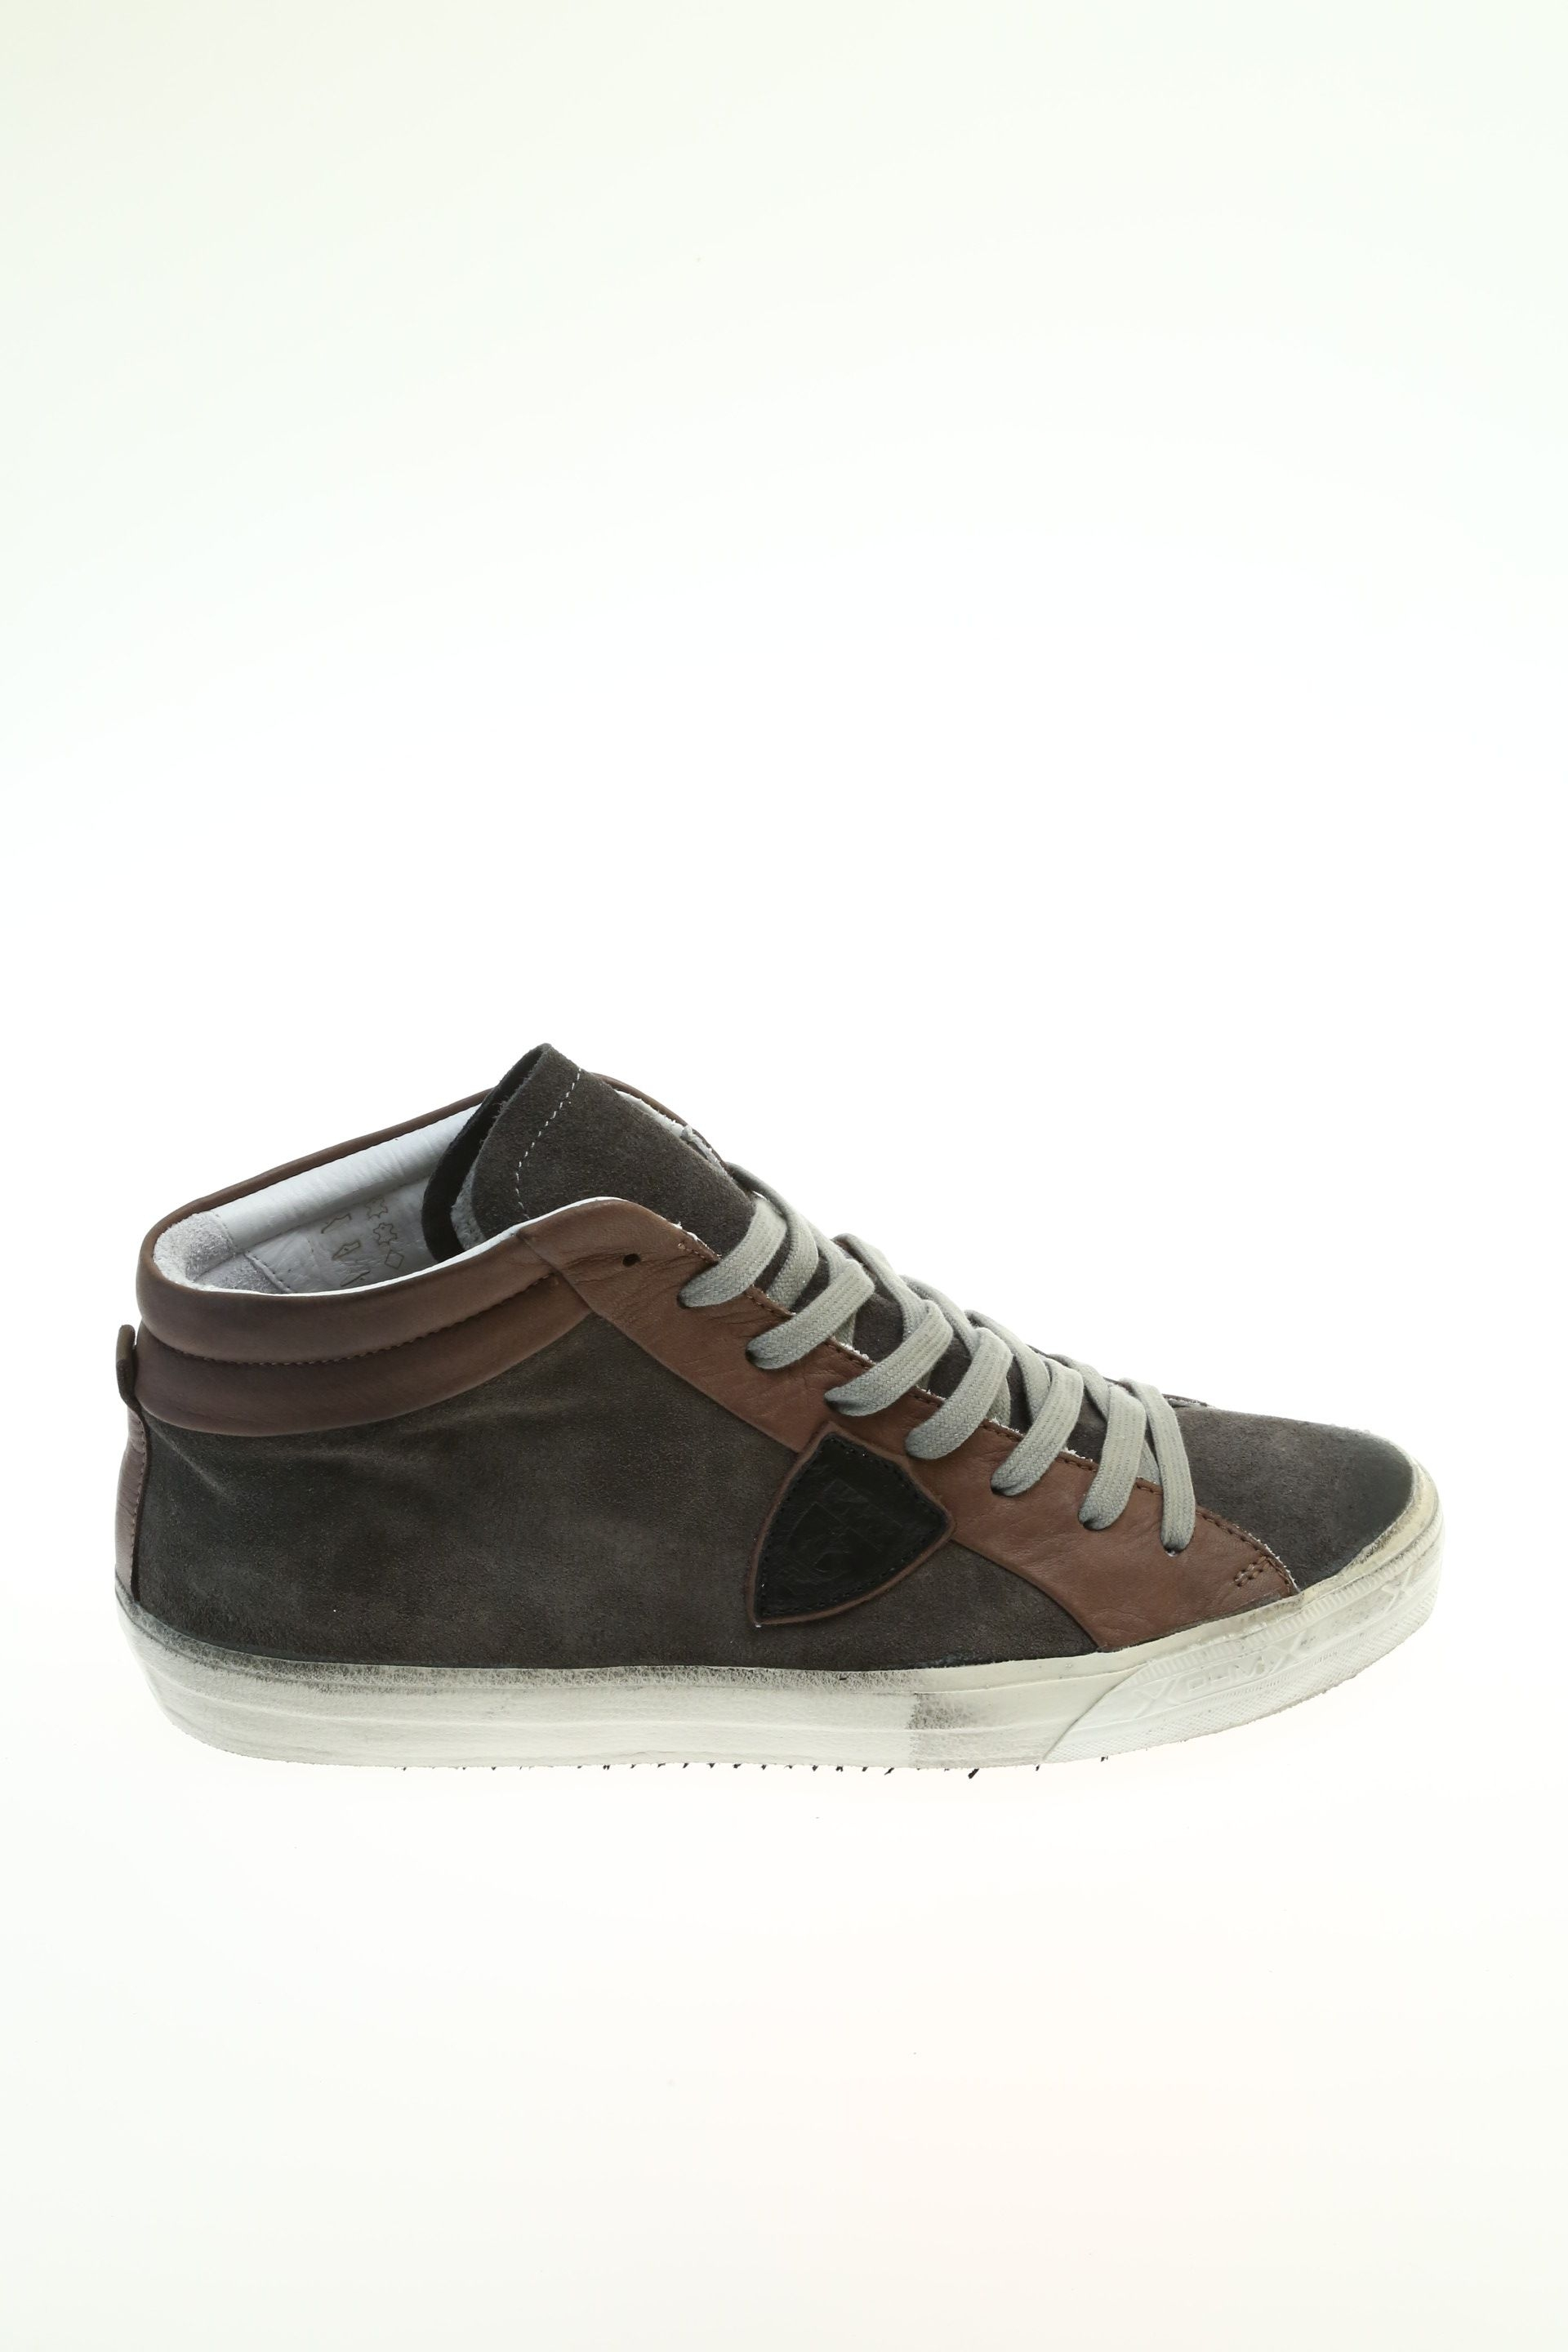 suede dove grey sneaker philippe model. Black Bedroom Furniture Sets. Home Design Ideas